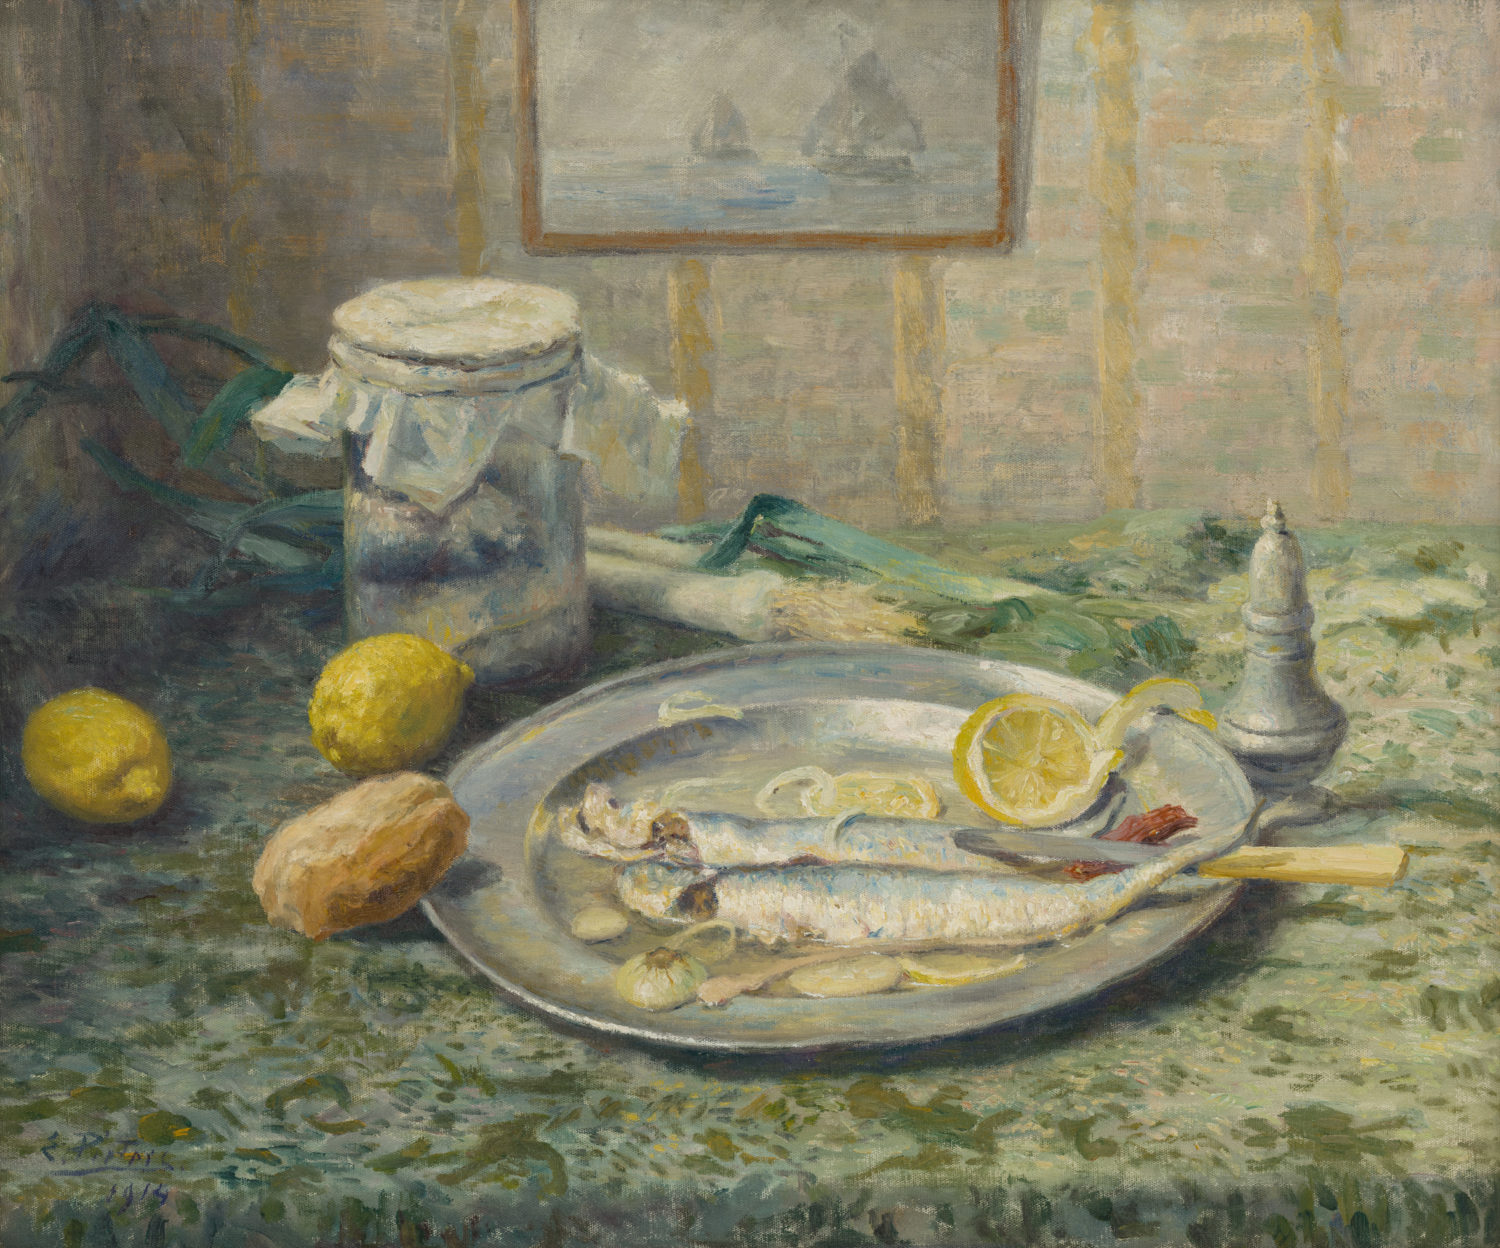 Evert Pieters | A still life with fish | Kunsthandel Bies | Bies Gallery